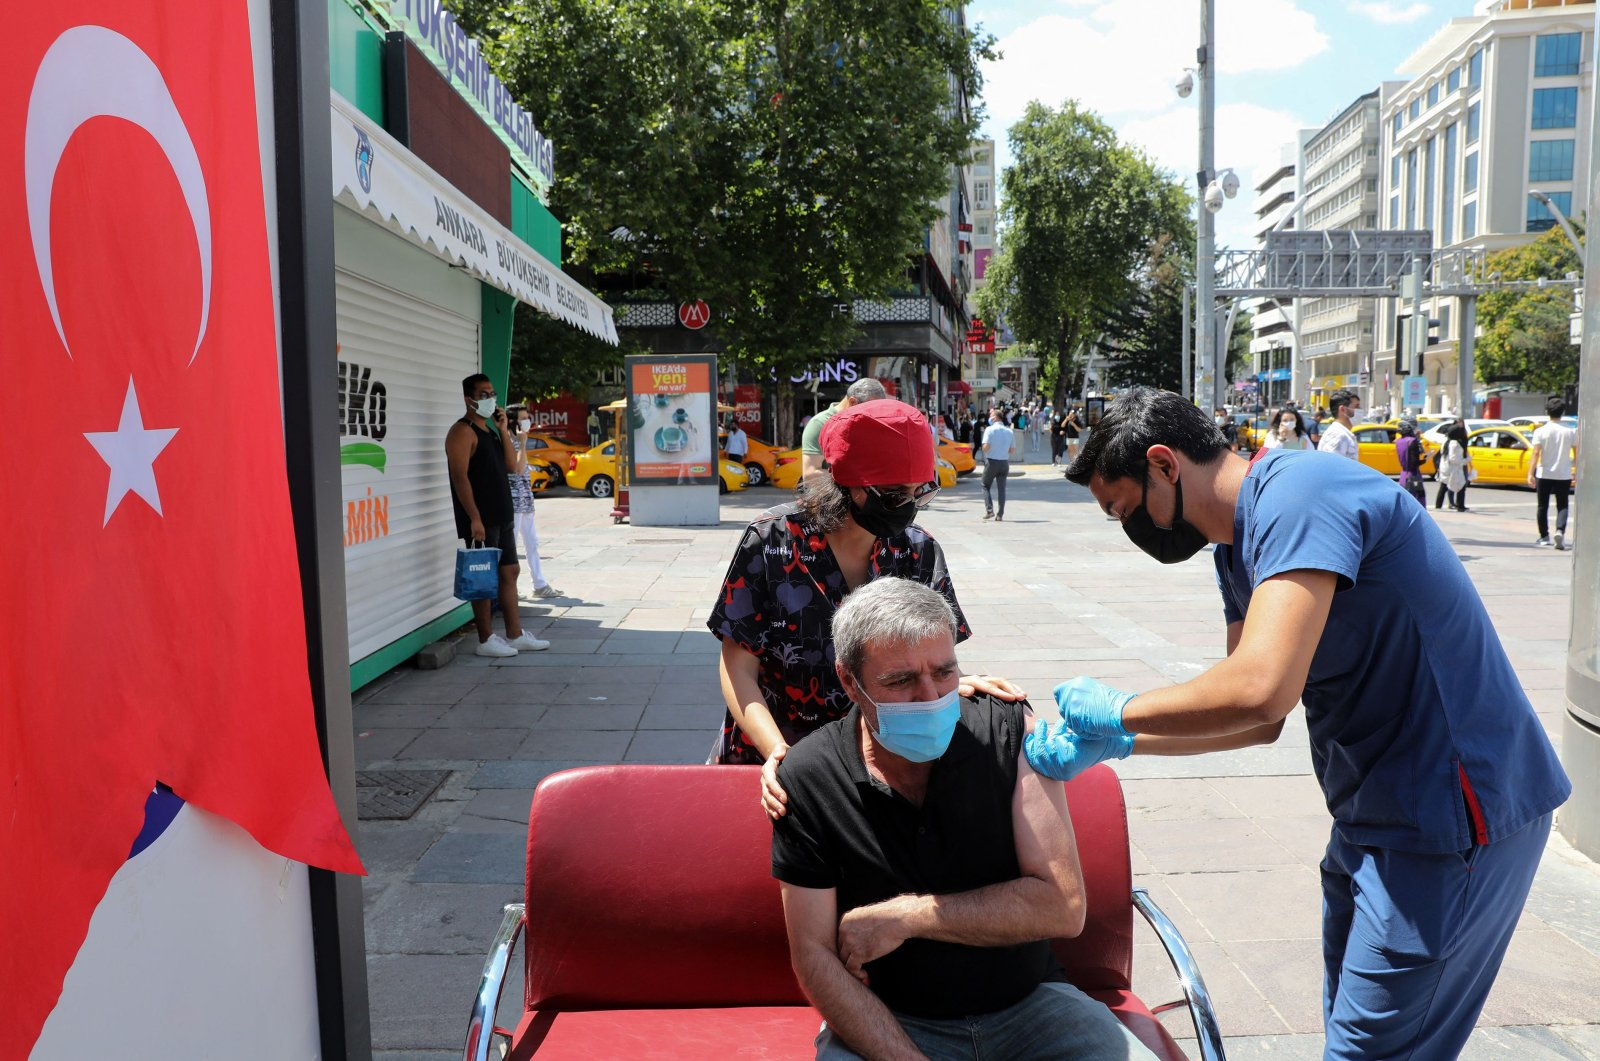 A healthcare worker administers a dose of COVID-19 vaccine to a man at Kizilay Square in Ankara, on July 11, 2021. (AFP Photo)